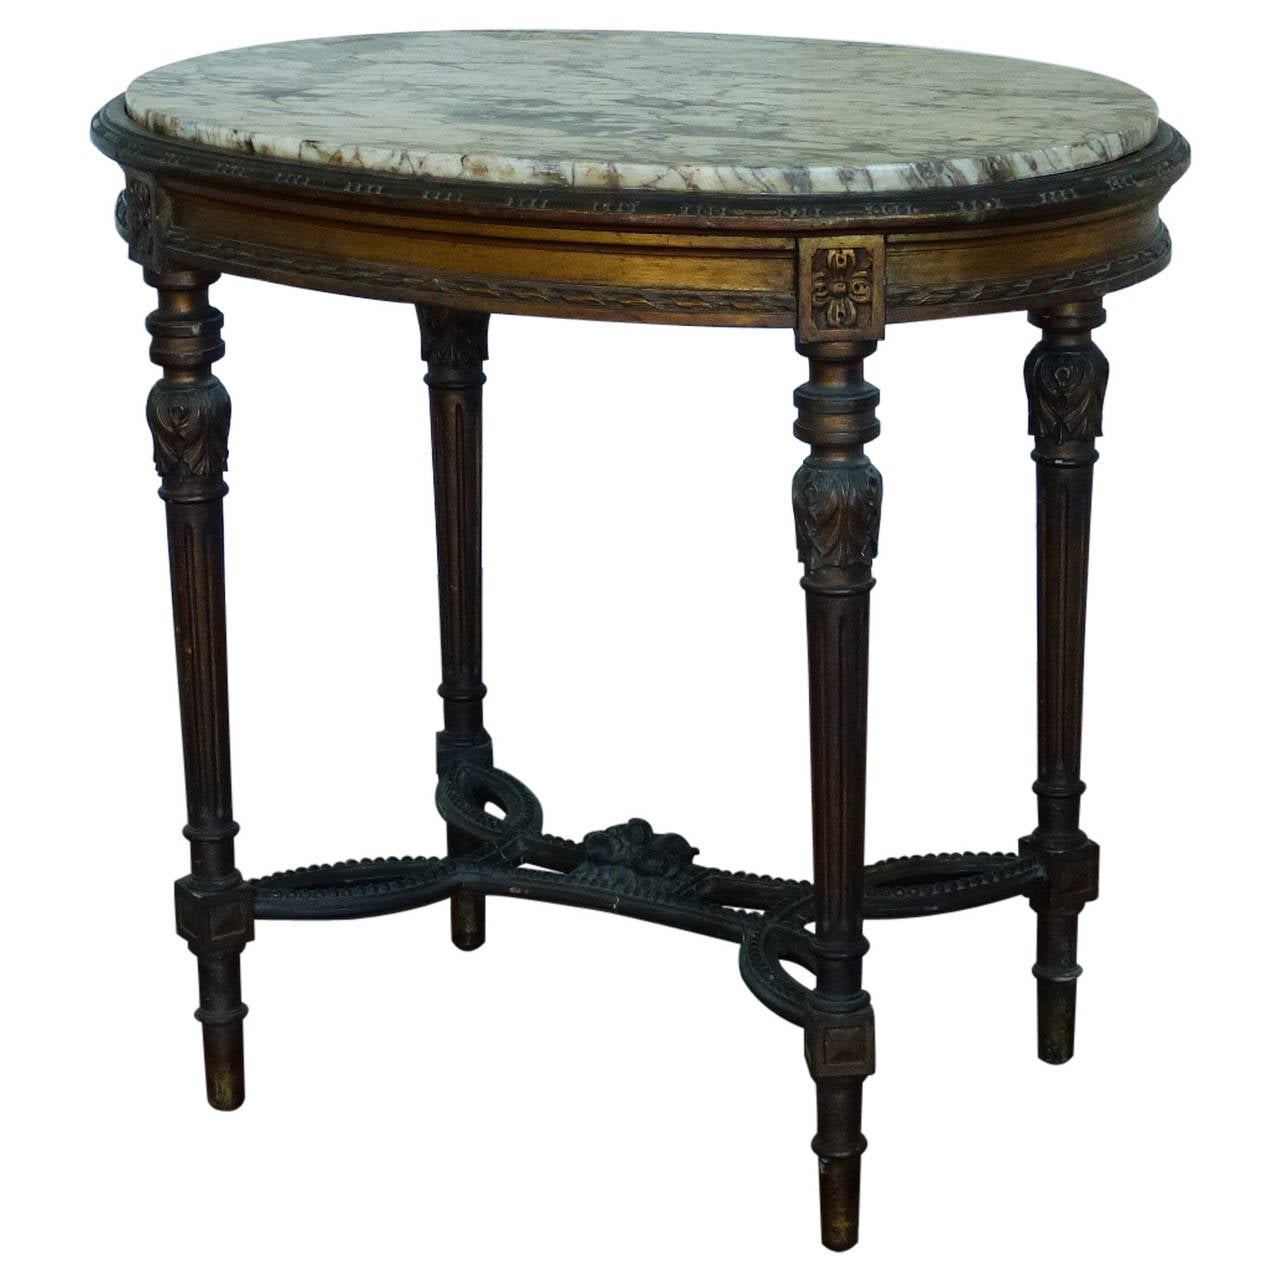 Wood gilded louis xvi style marble top oval table at 1stdibs - Archives departementales 33 tables decennales ...